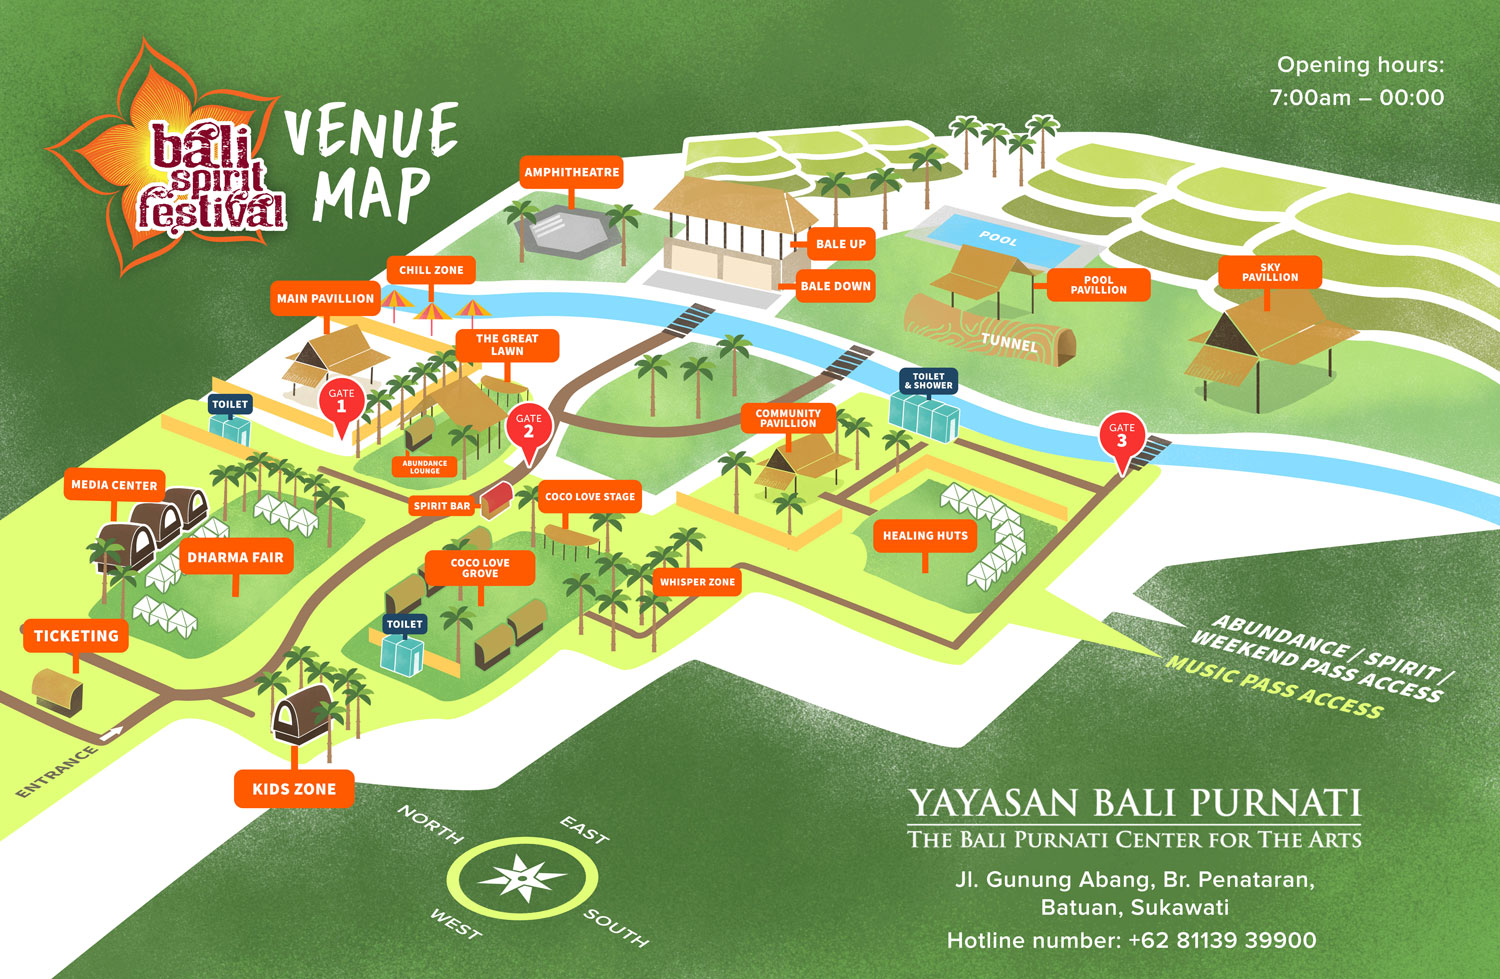 BSF Venue Map.jpg